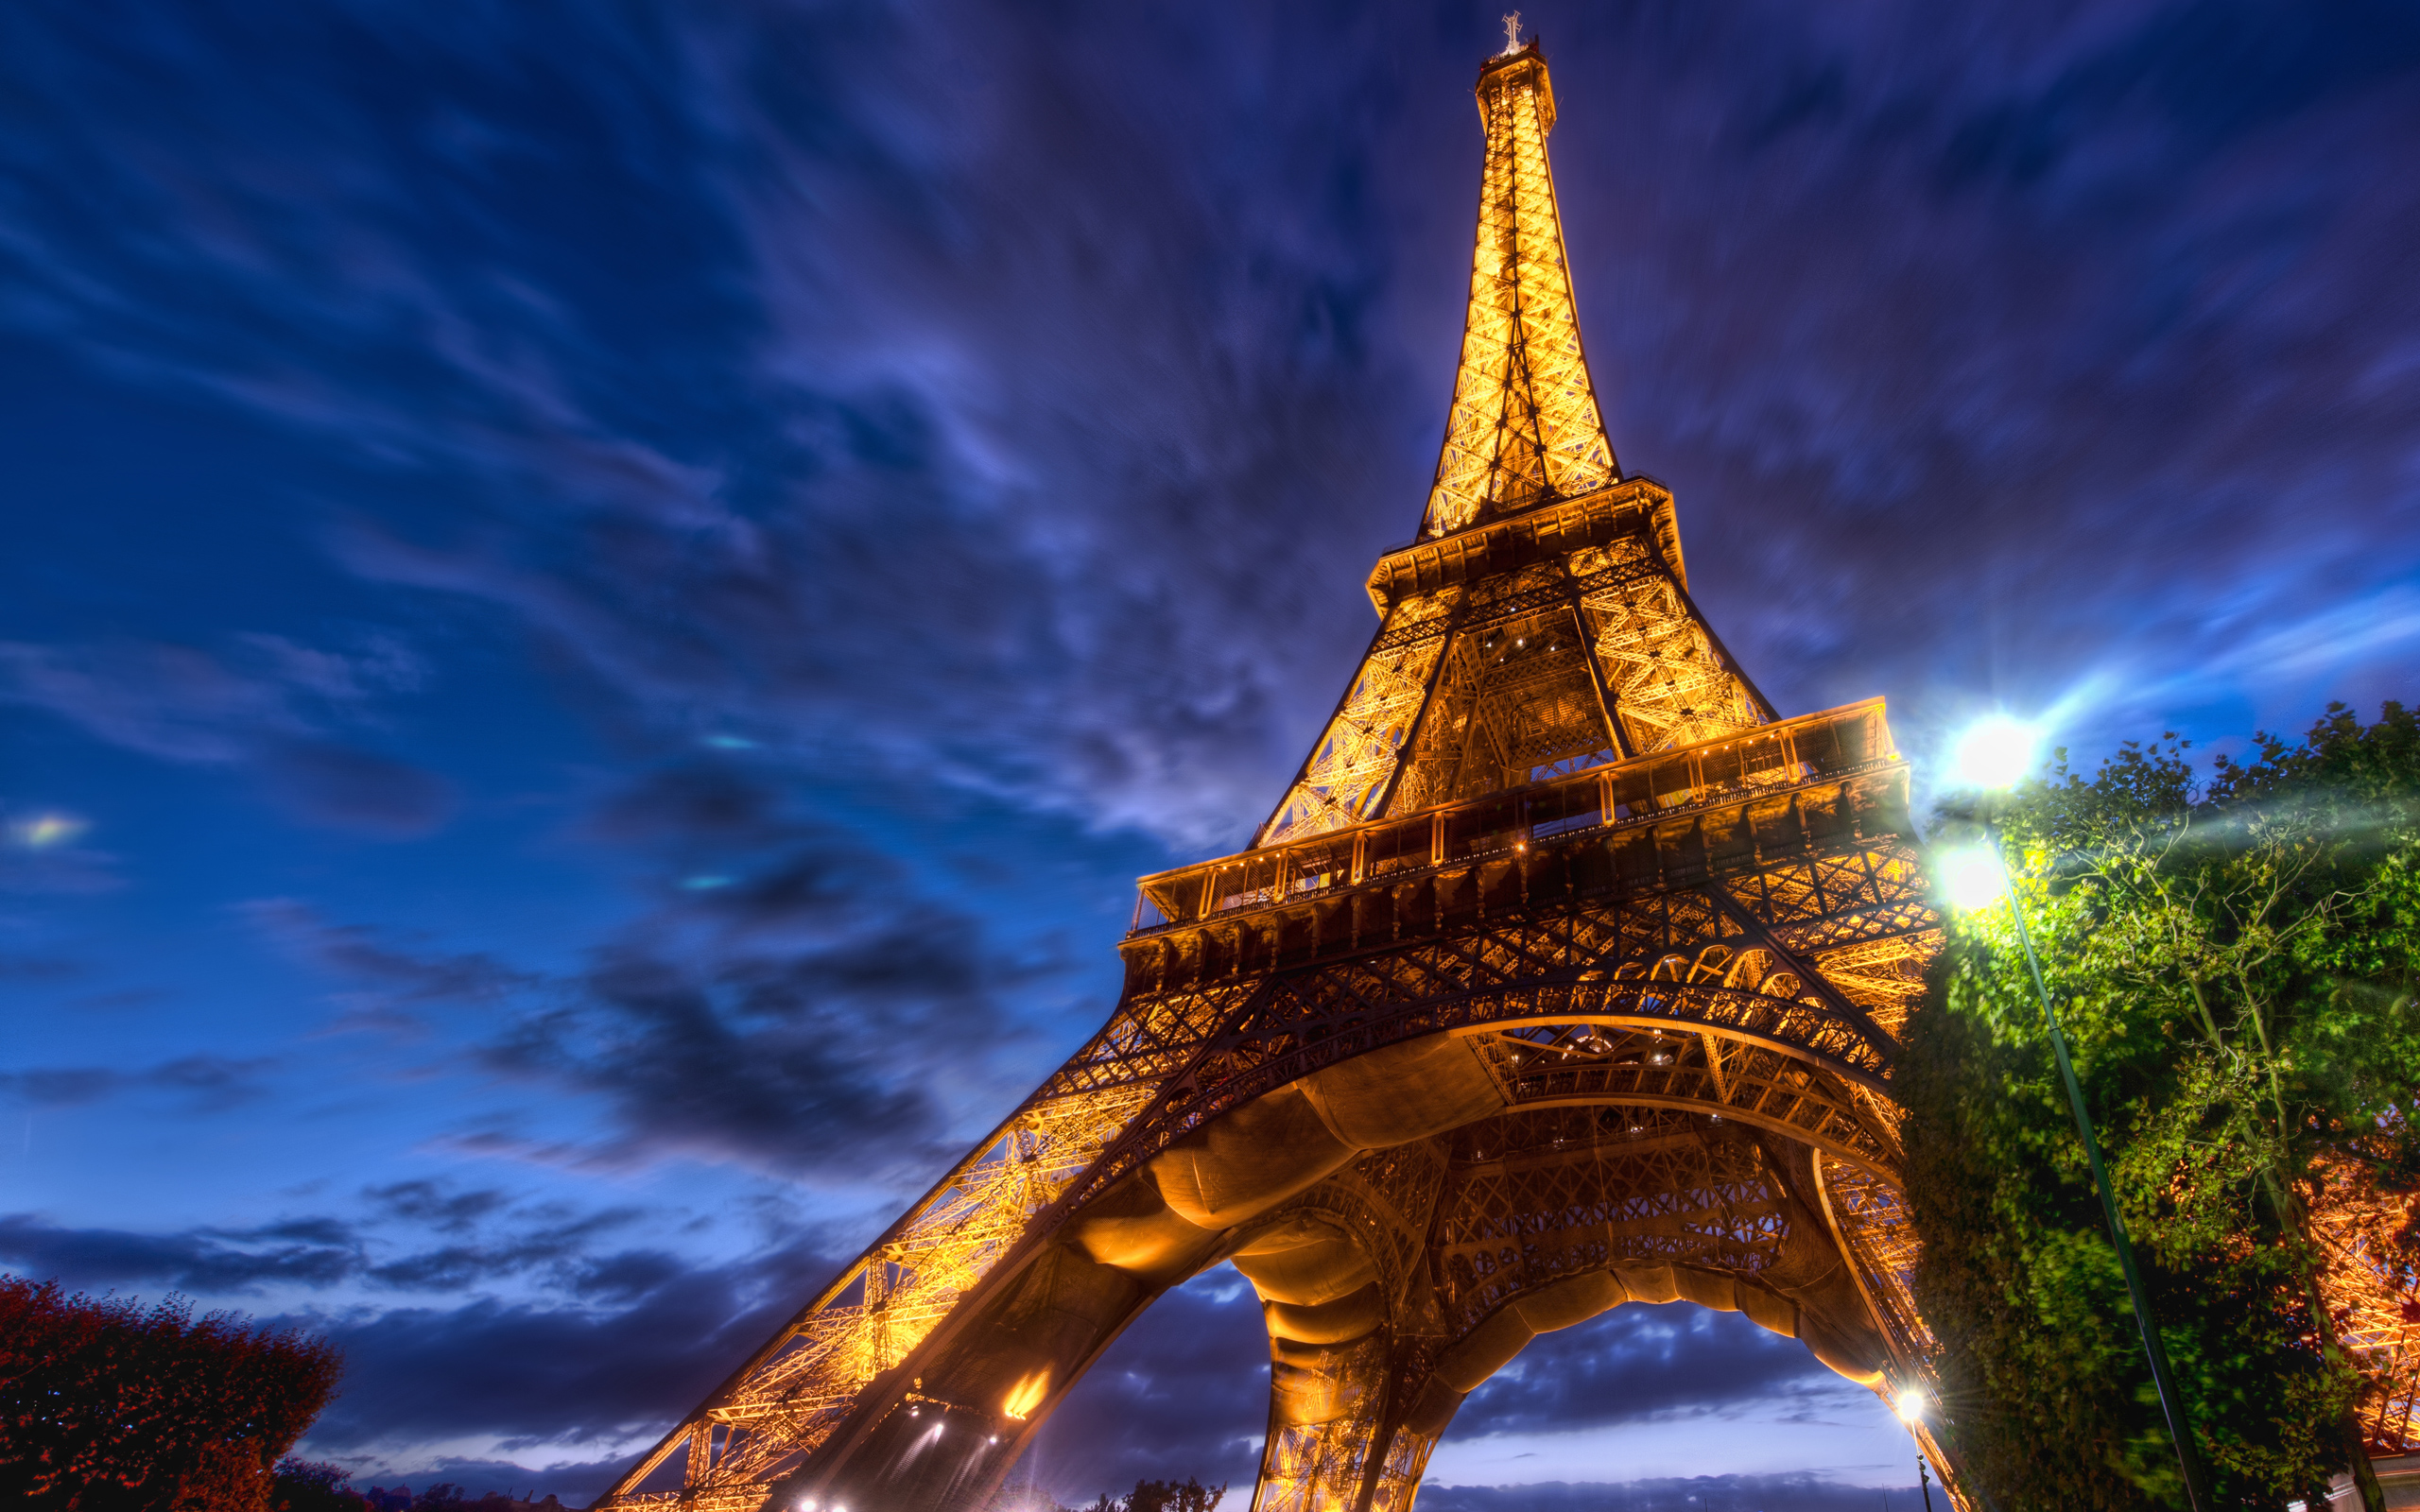 Eiffel 4k Wallpapers For Your Desktop Or Mobile Screen Free And Easy To Download